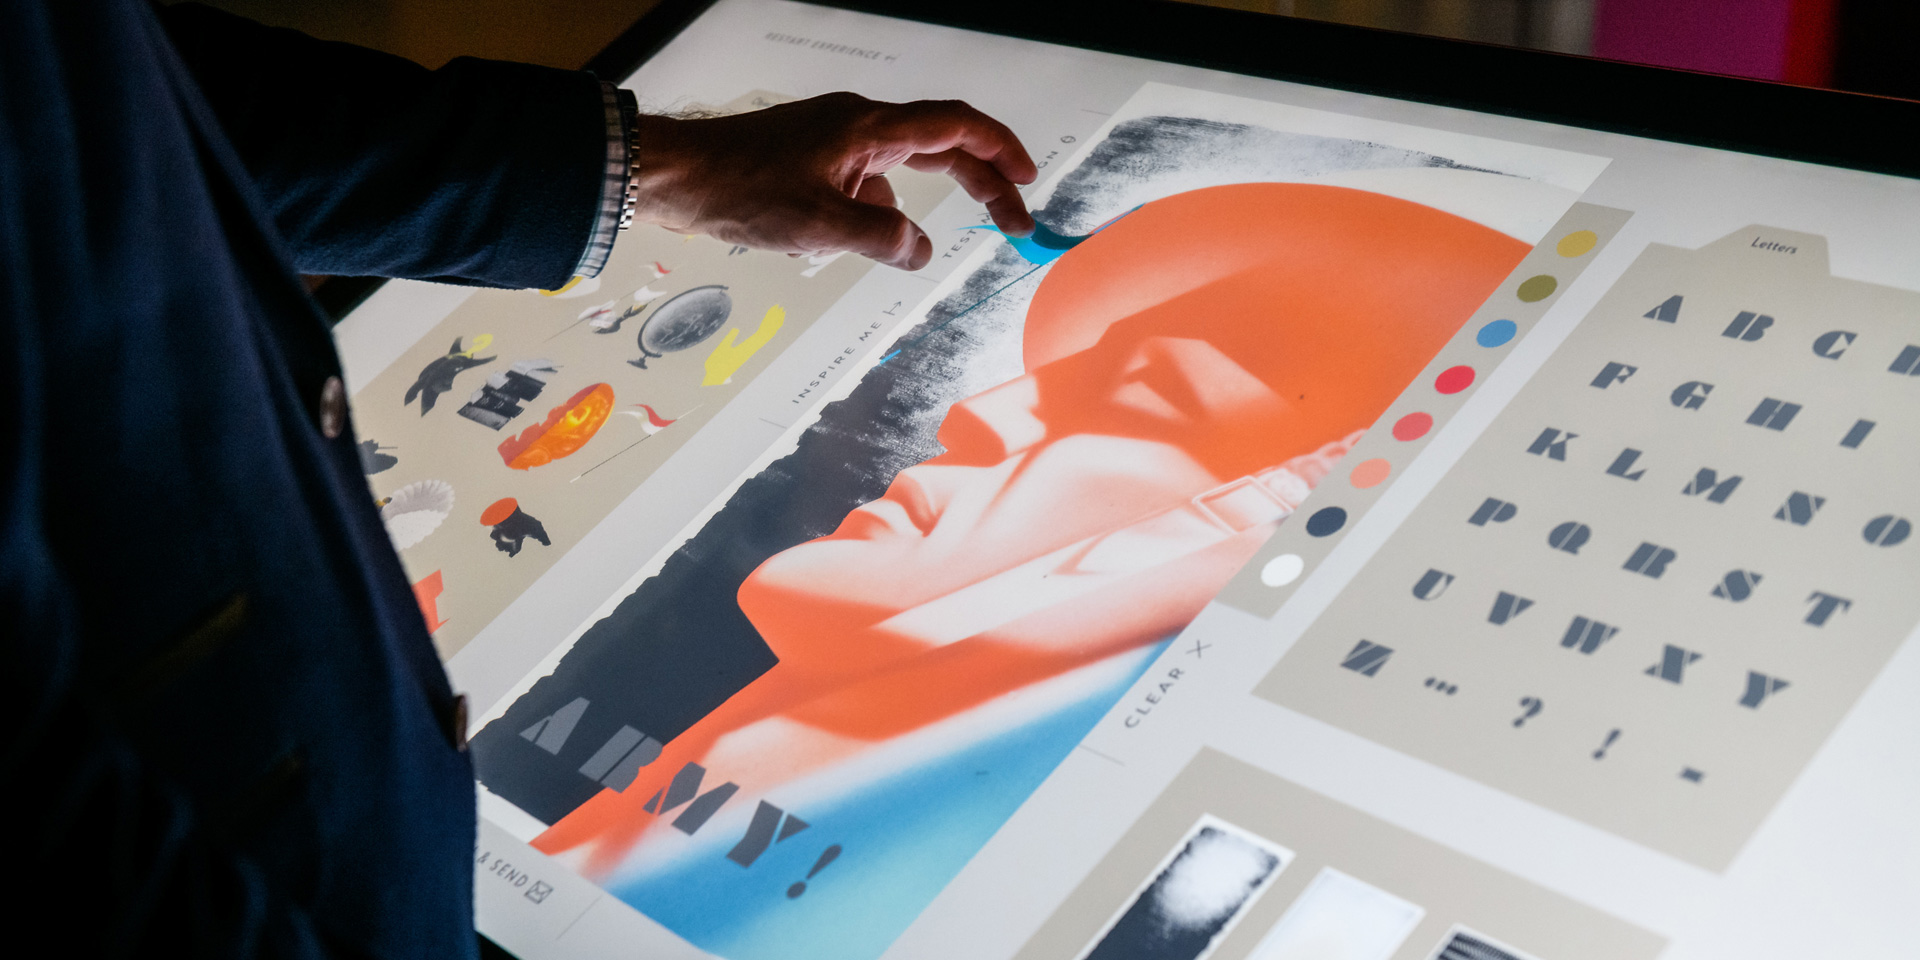 Designing a poster in the 'Art of Persuasion' exhibition